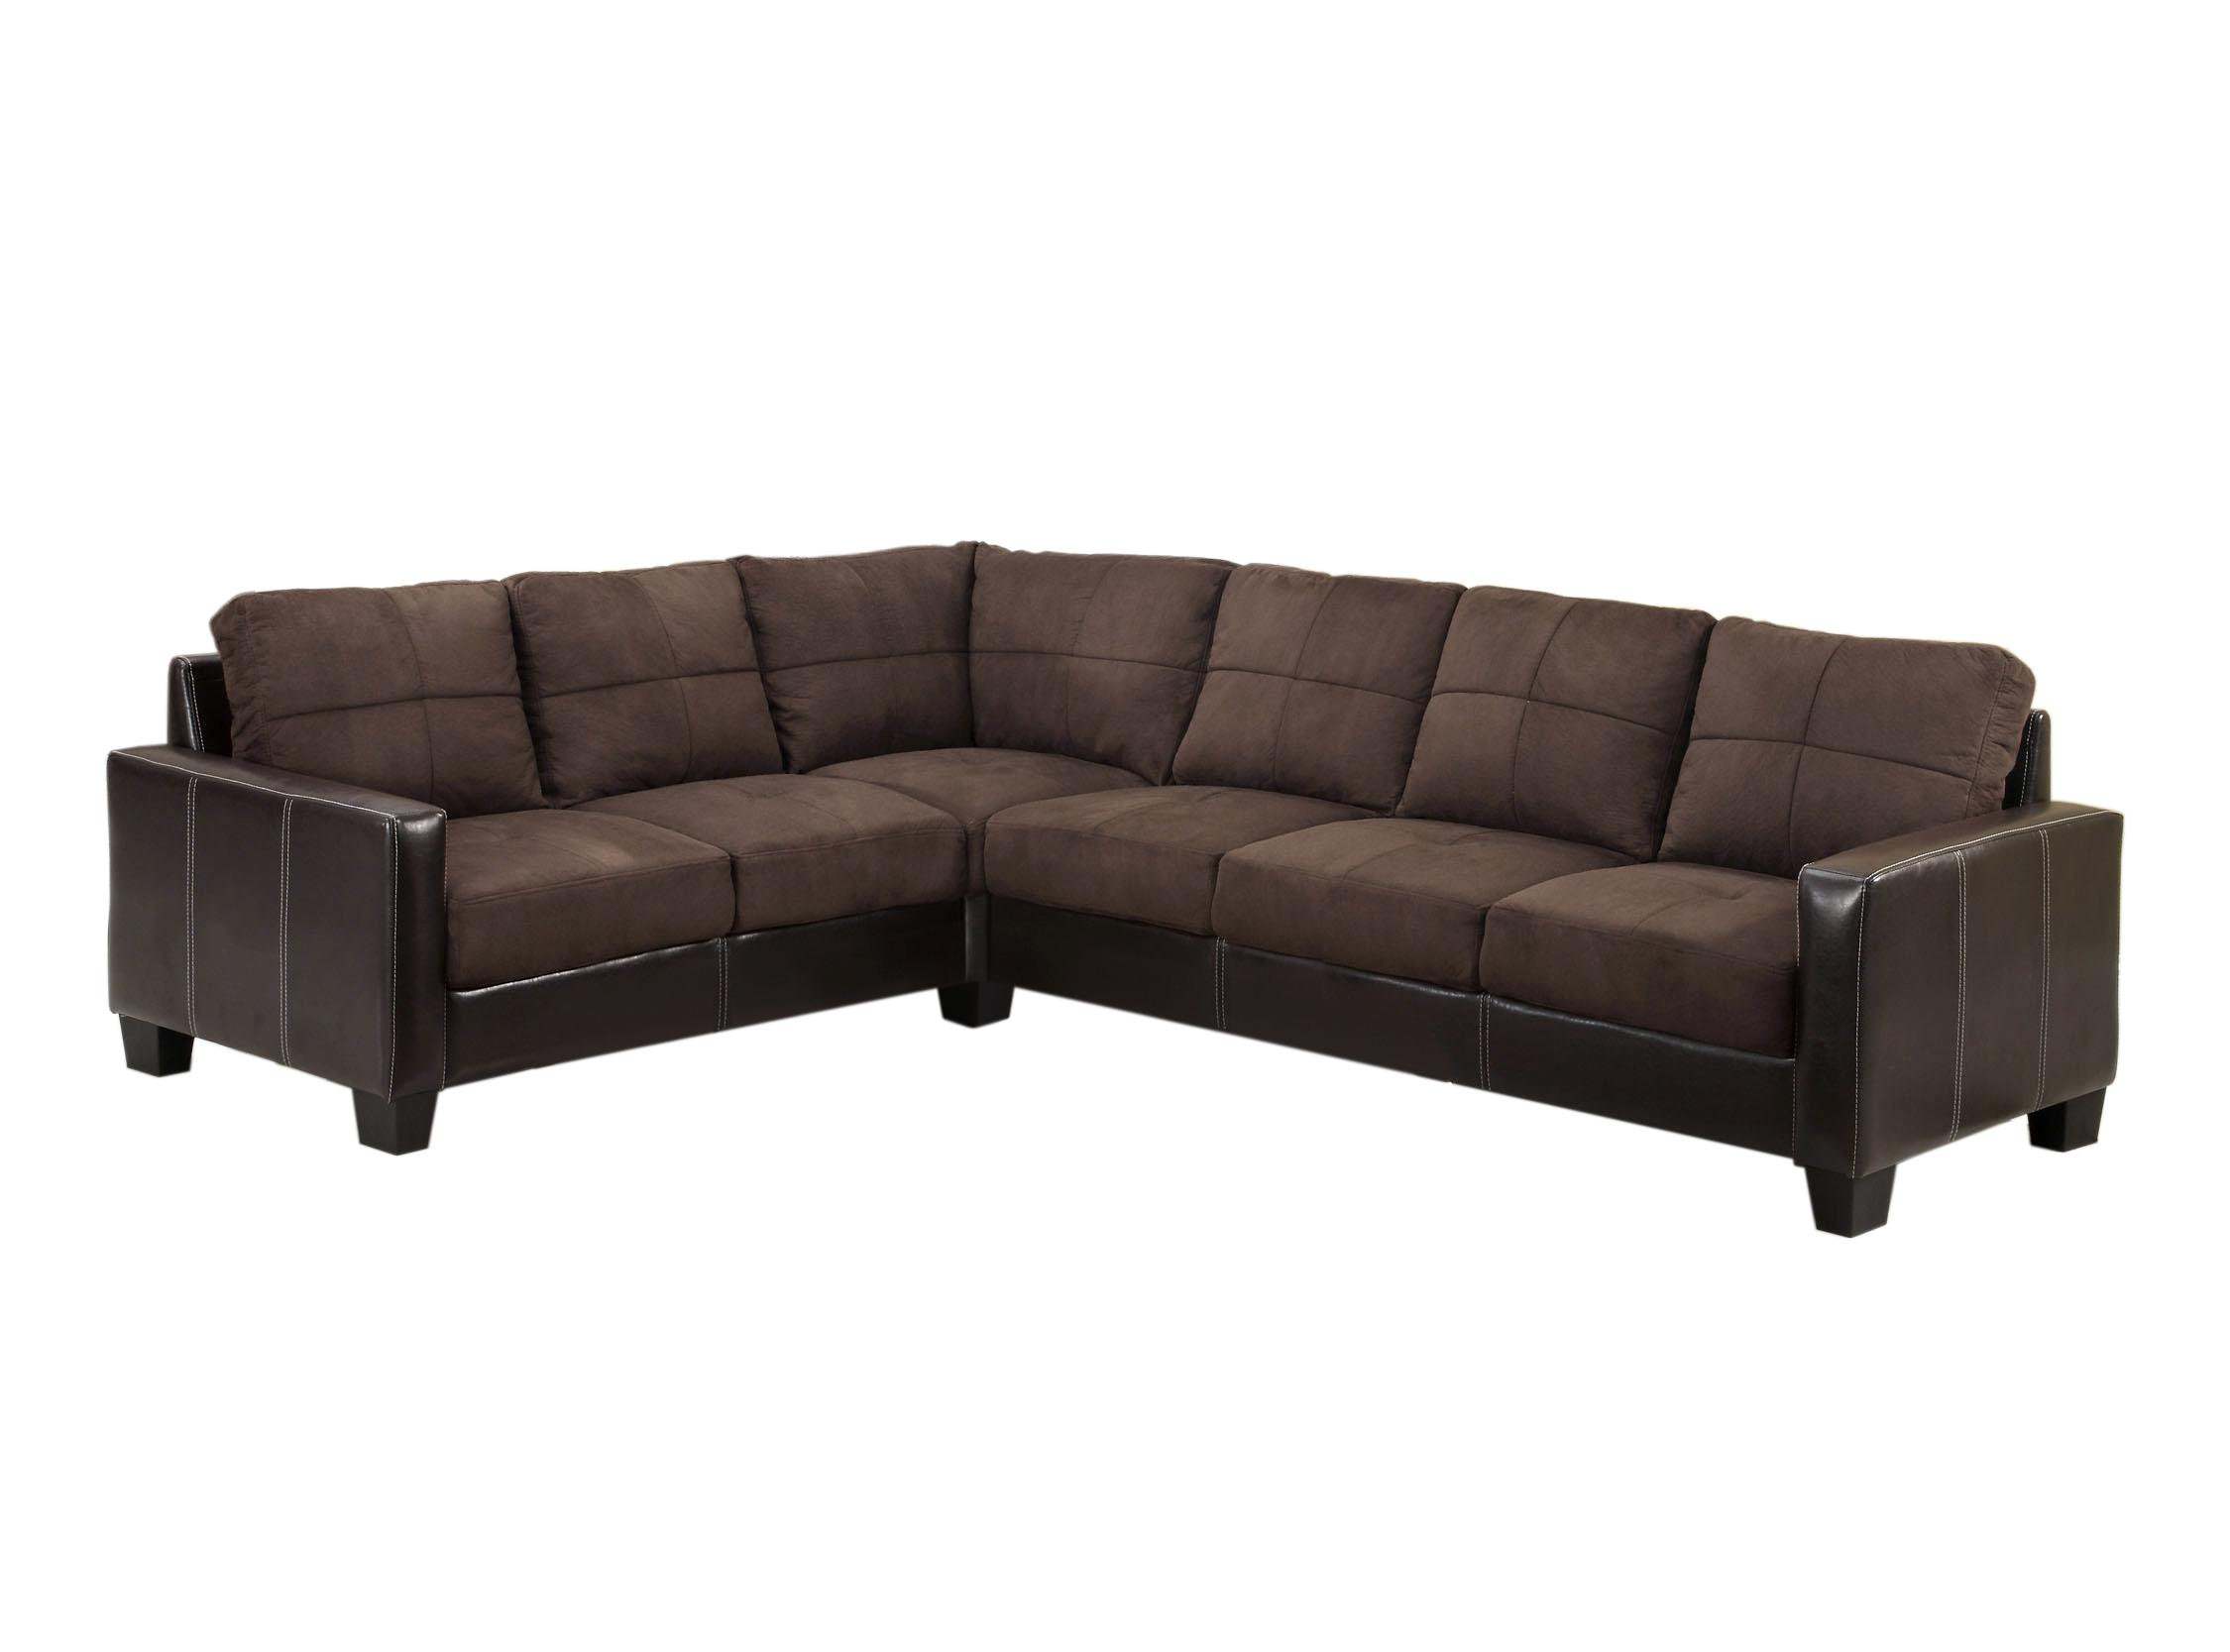 Amazon Furniture of America Microfiber Upholstered Sectional